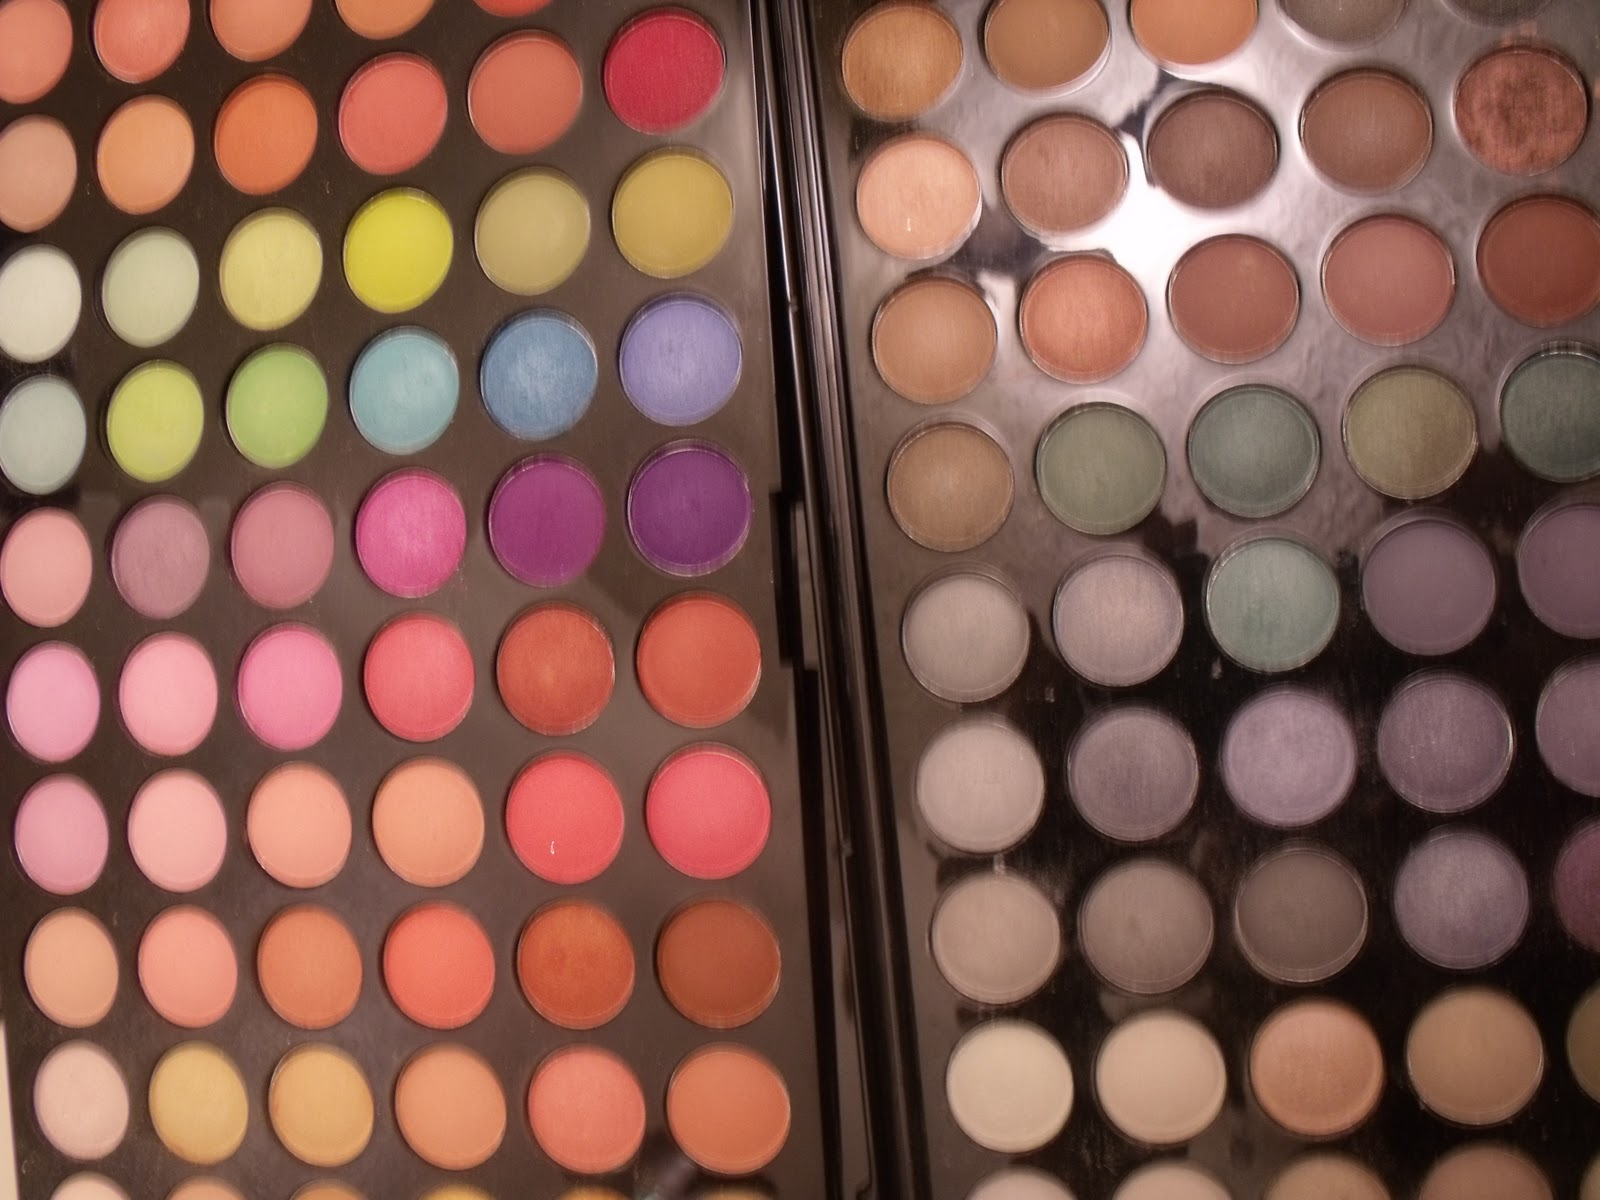 bh cosmetics 120 palette 3rd edition review